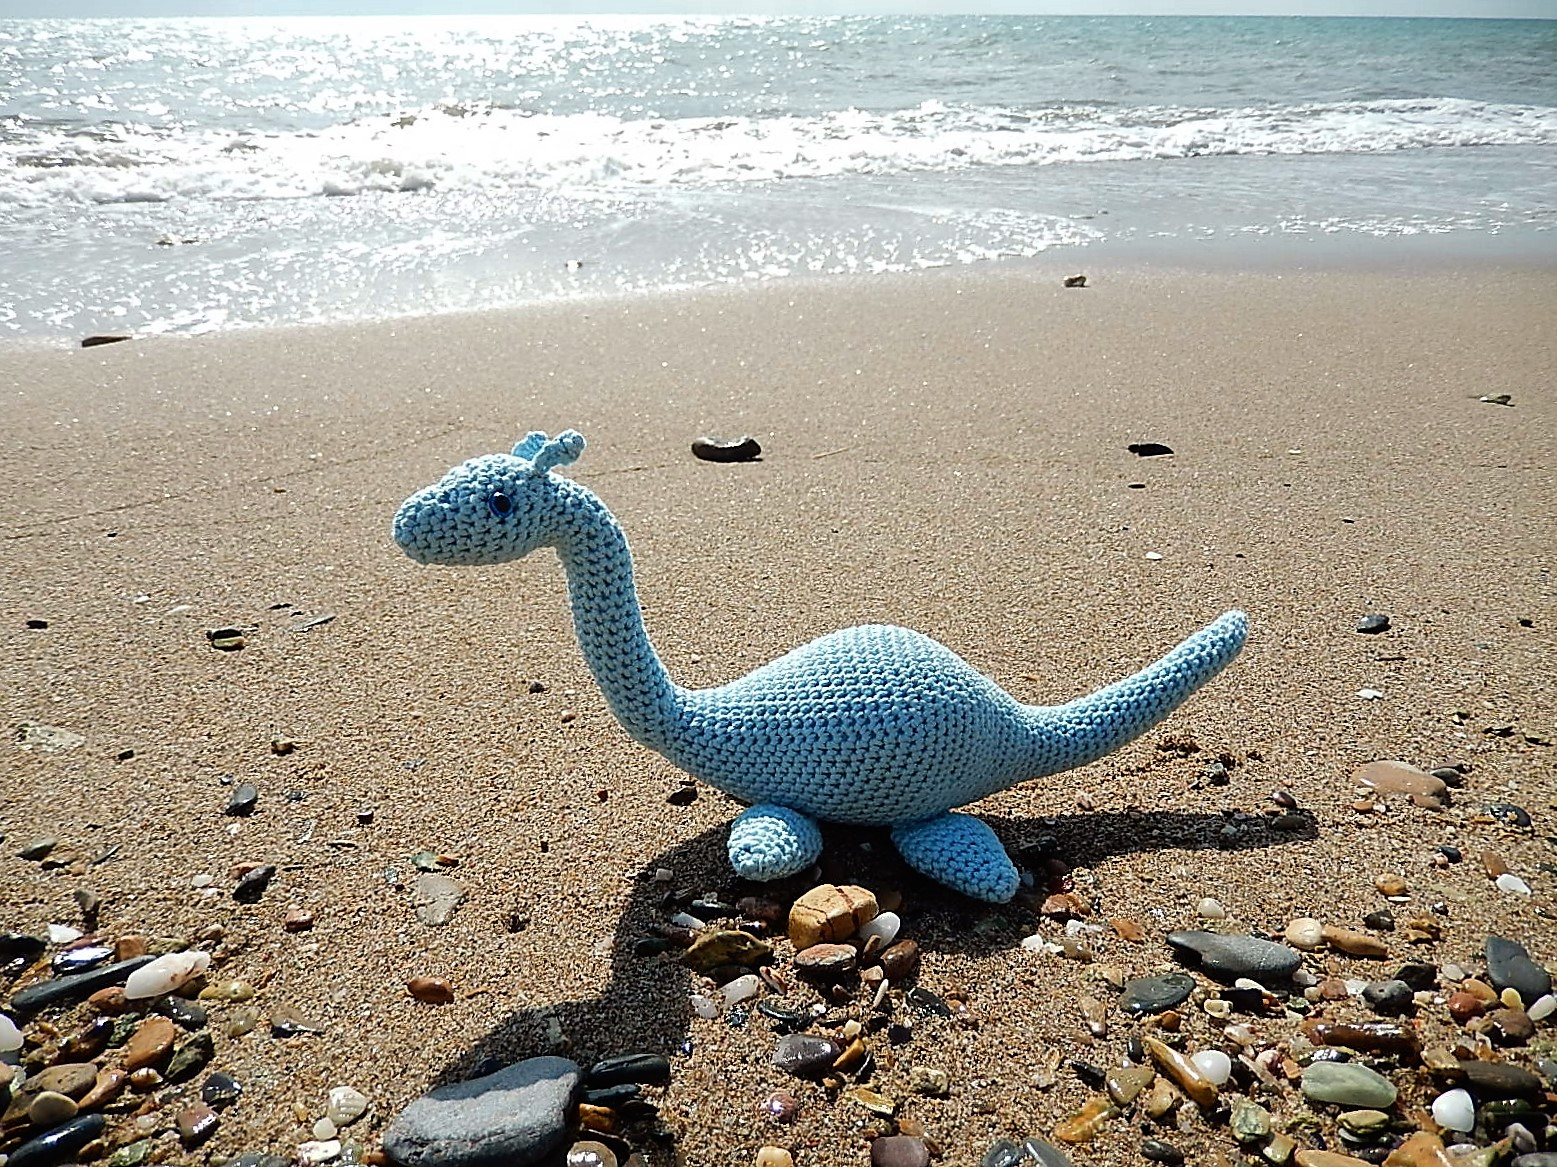 Nessie sighted – in Greece :)